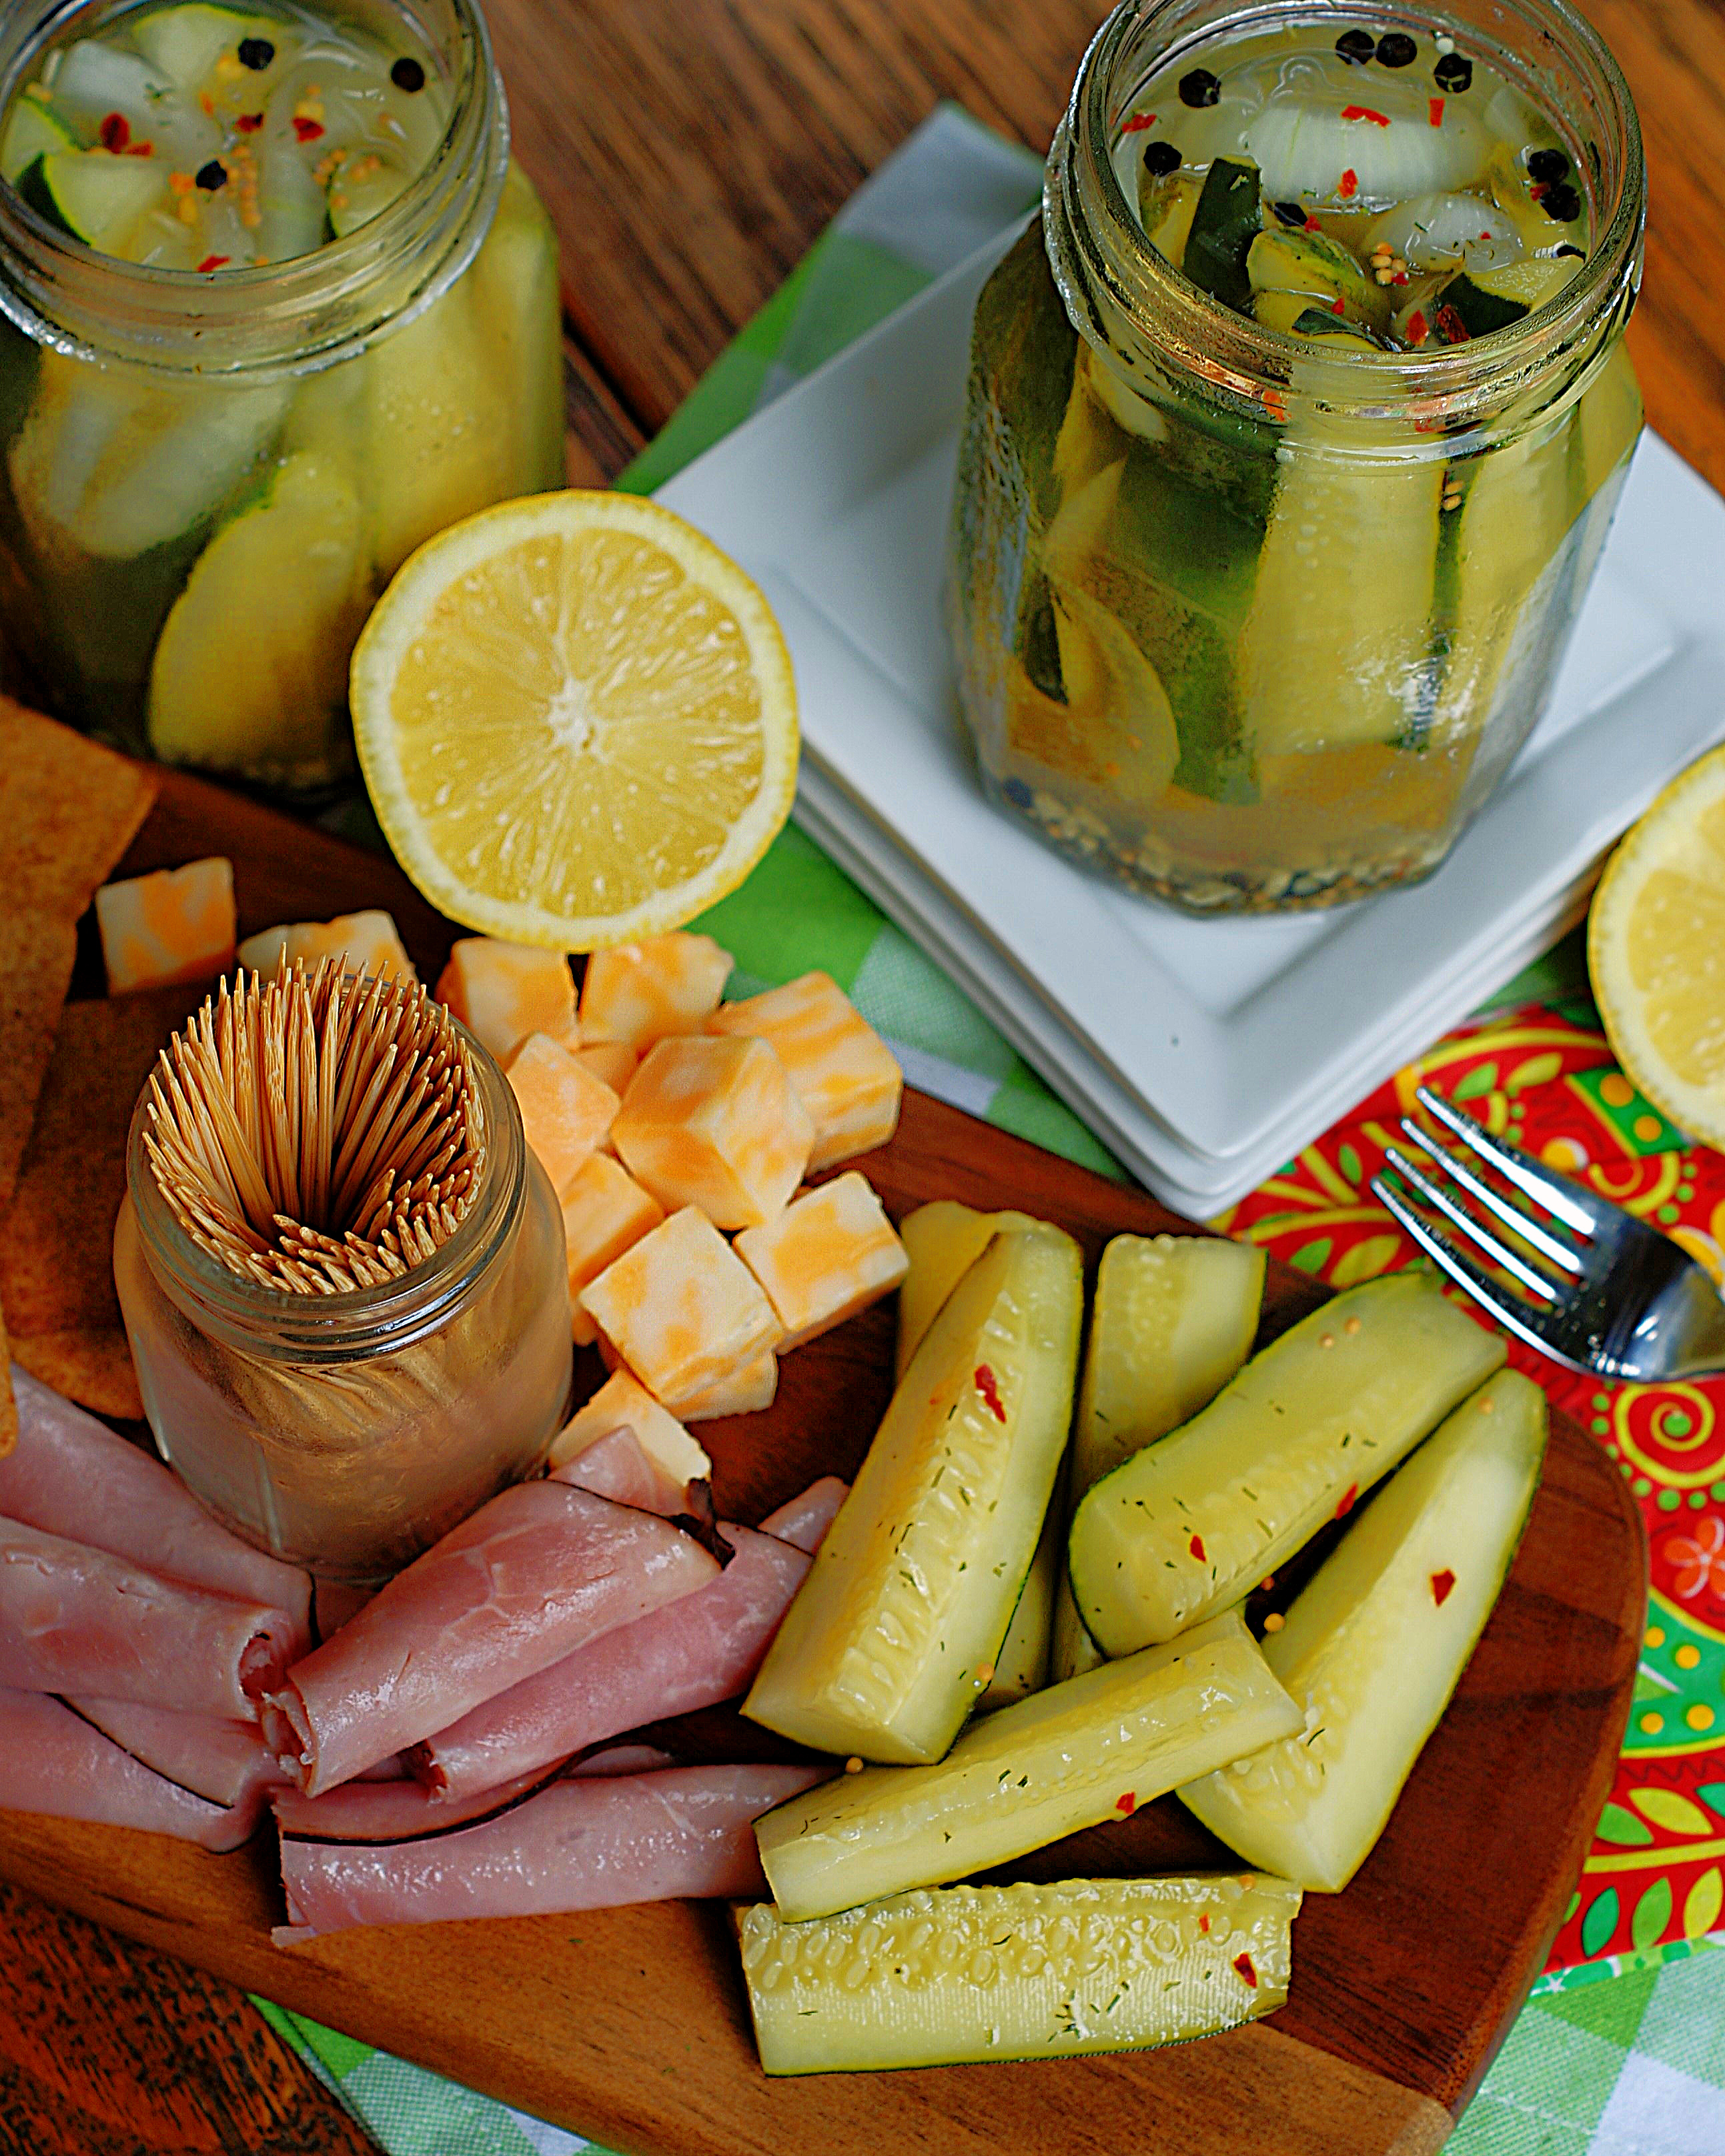 A cheese platter with lemonade refrigerator pickles.